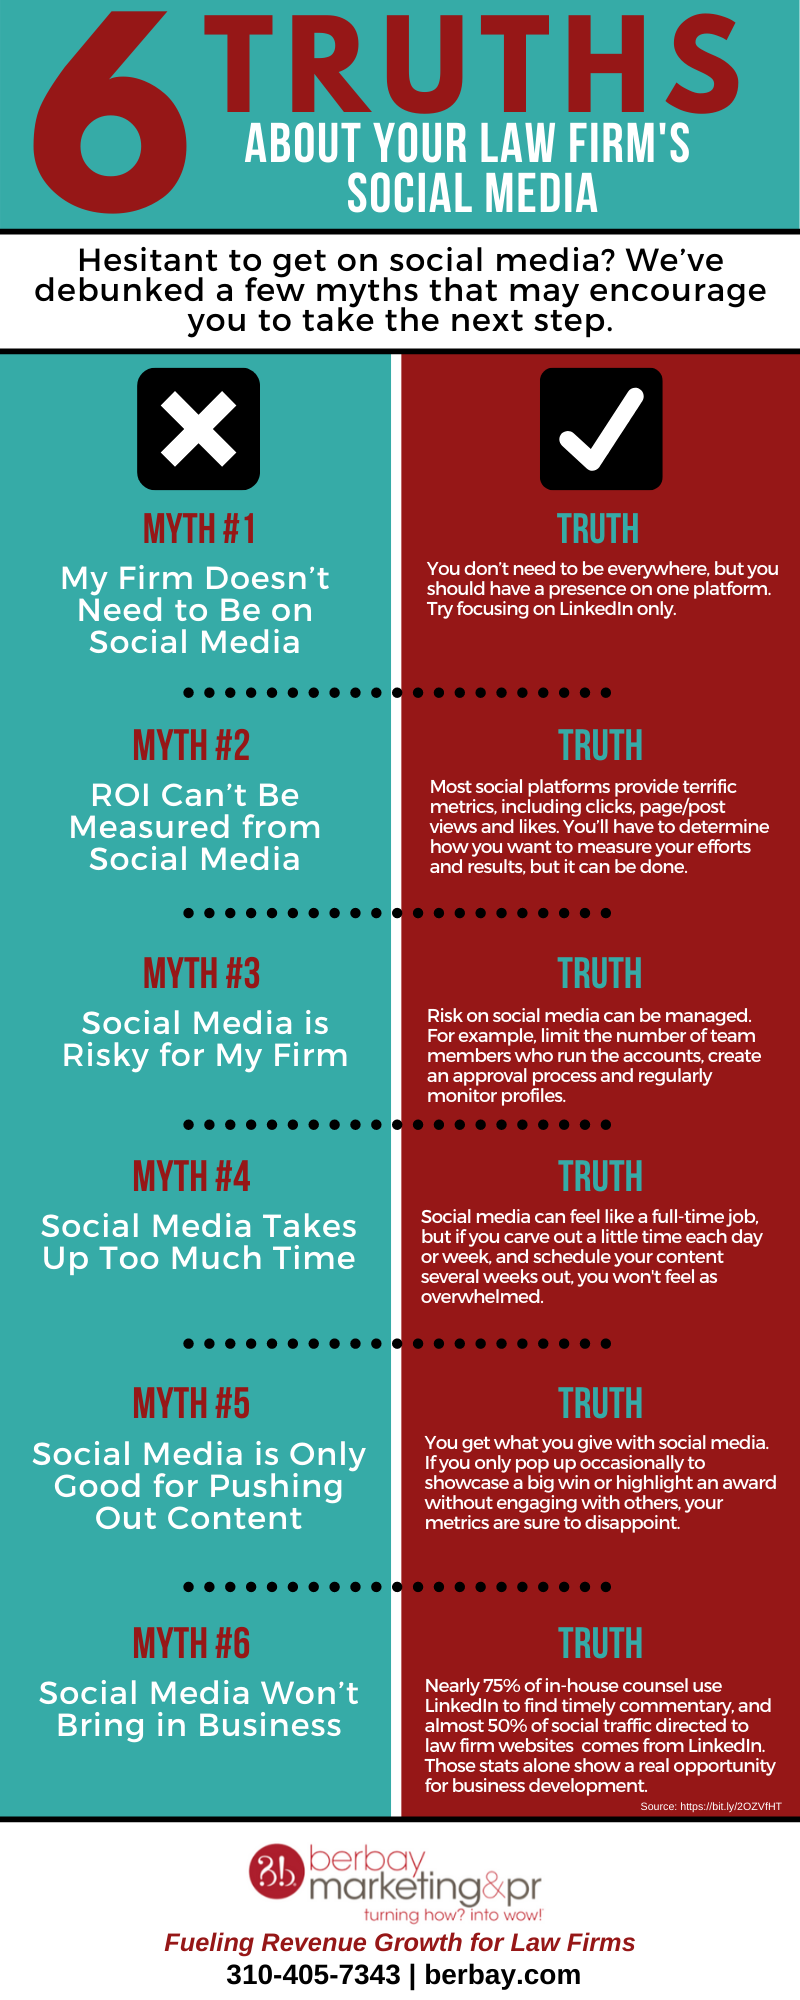 6 Truths About Social Media Marketing for Your Law Firm